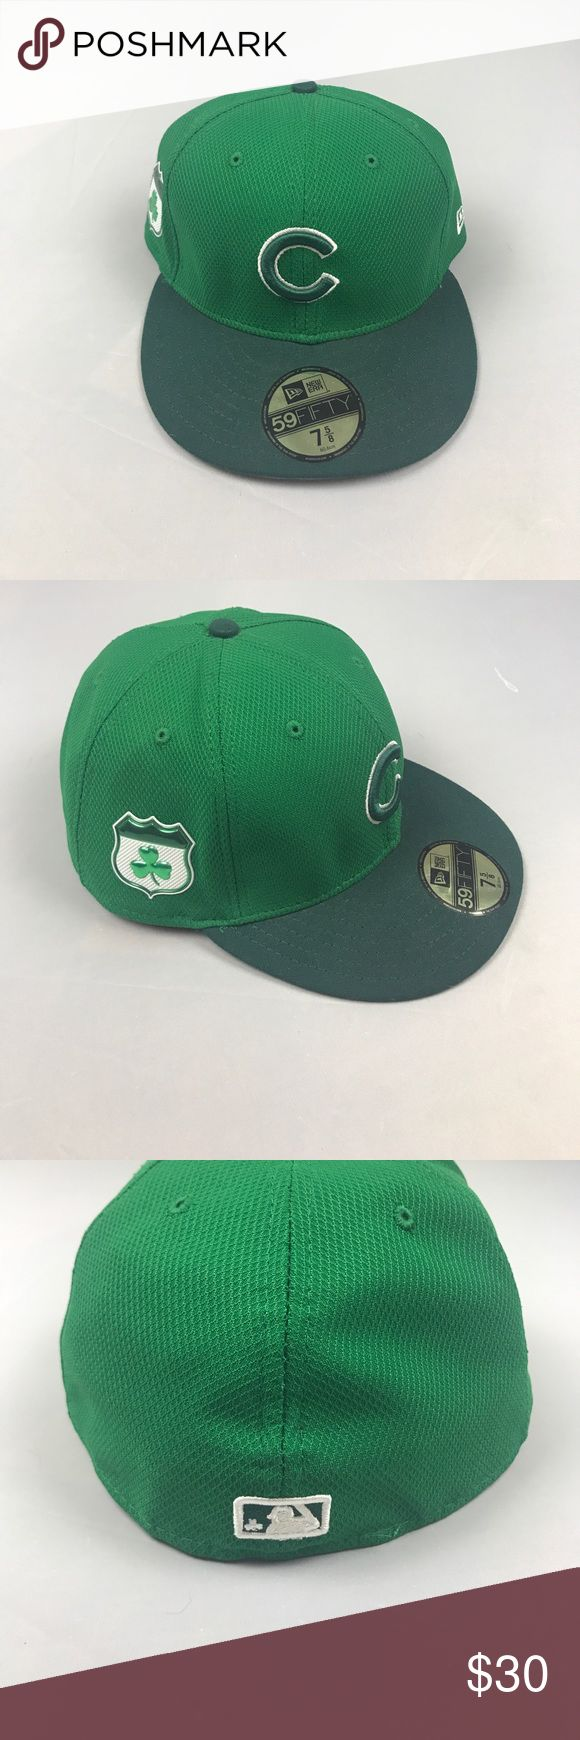 Chicago Cubs New Era Fitted 59FIFTY 7 5/8 Hat New with tags Chicago Cubs St. Patty's day Spring Training Hat                                                                                              🍀Fitted hat                                                                               🍀From 2017 Spring Training                                                  🍀Size 7 5/8 .                                                                            🍀Open to reasonable offers 😃 New…